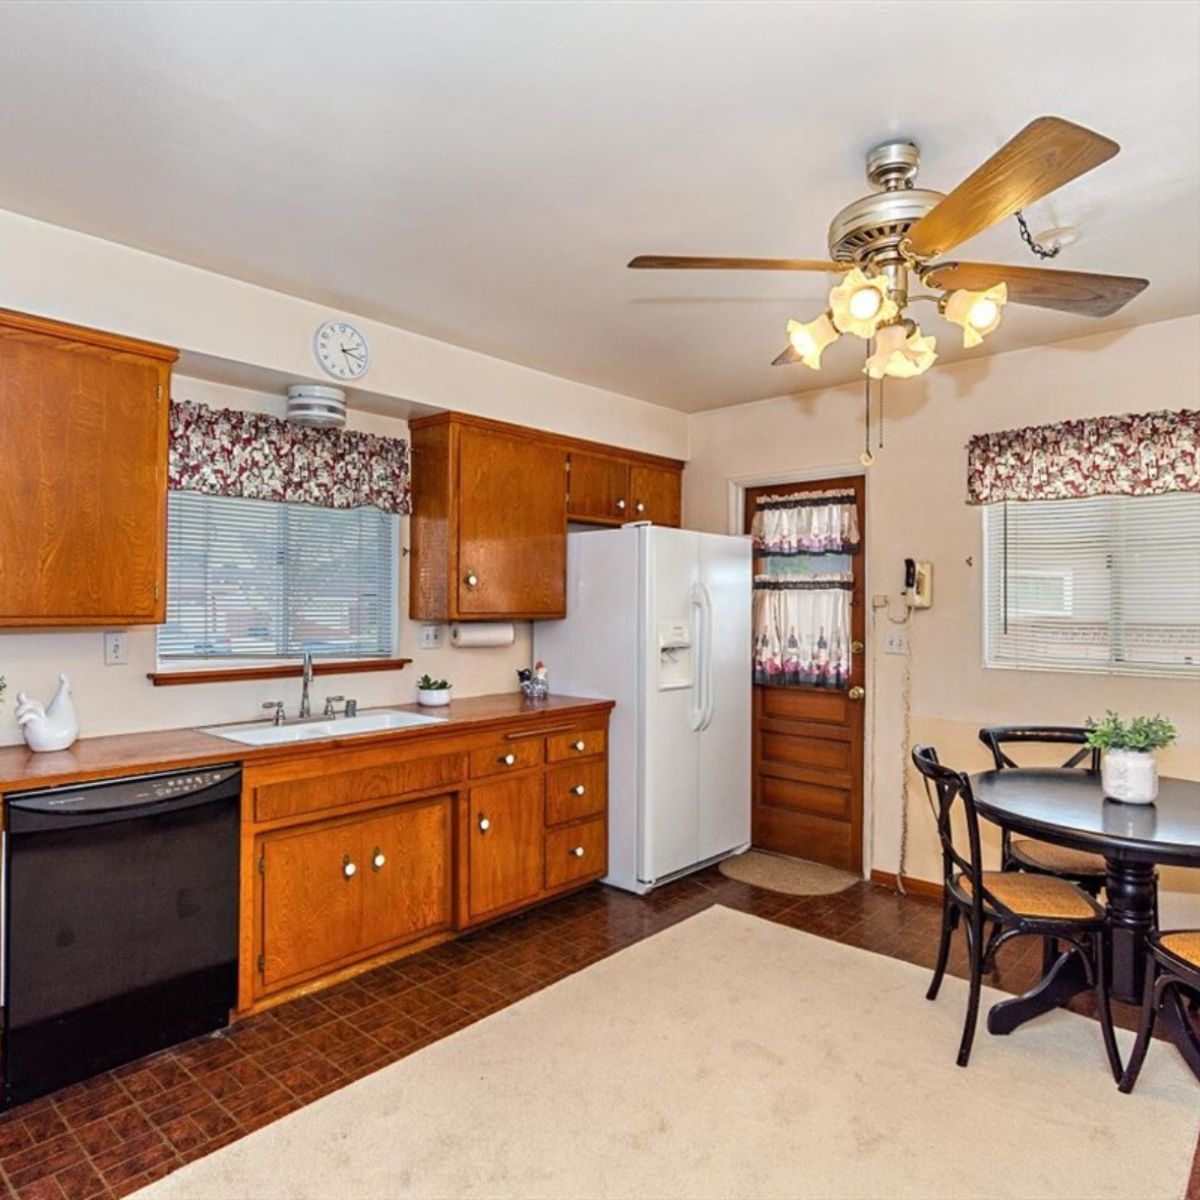 Kitchen With Wood Cabinets In 2020 Wood Kitchen Cabinets Wood Cabinets Kitchen